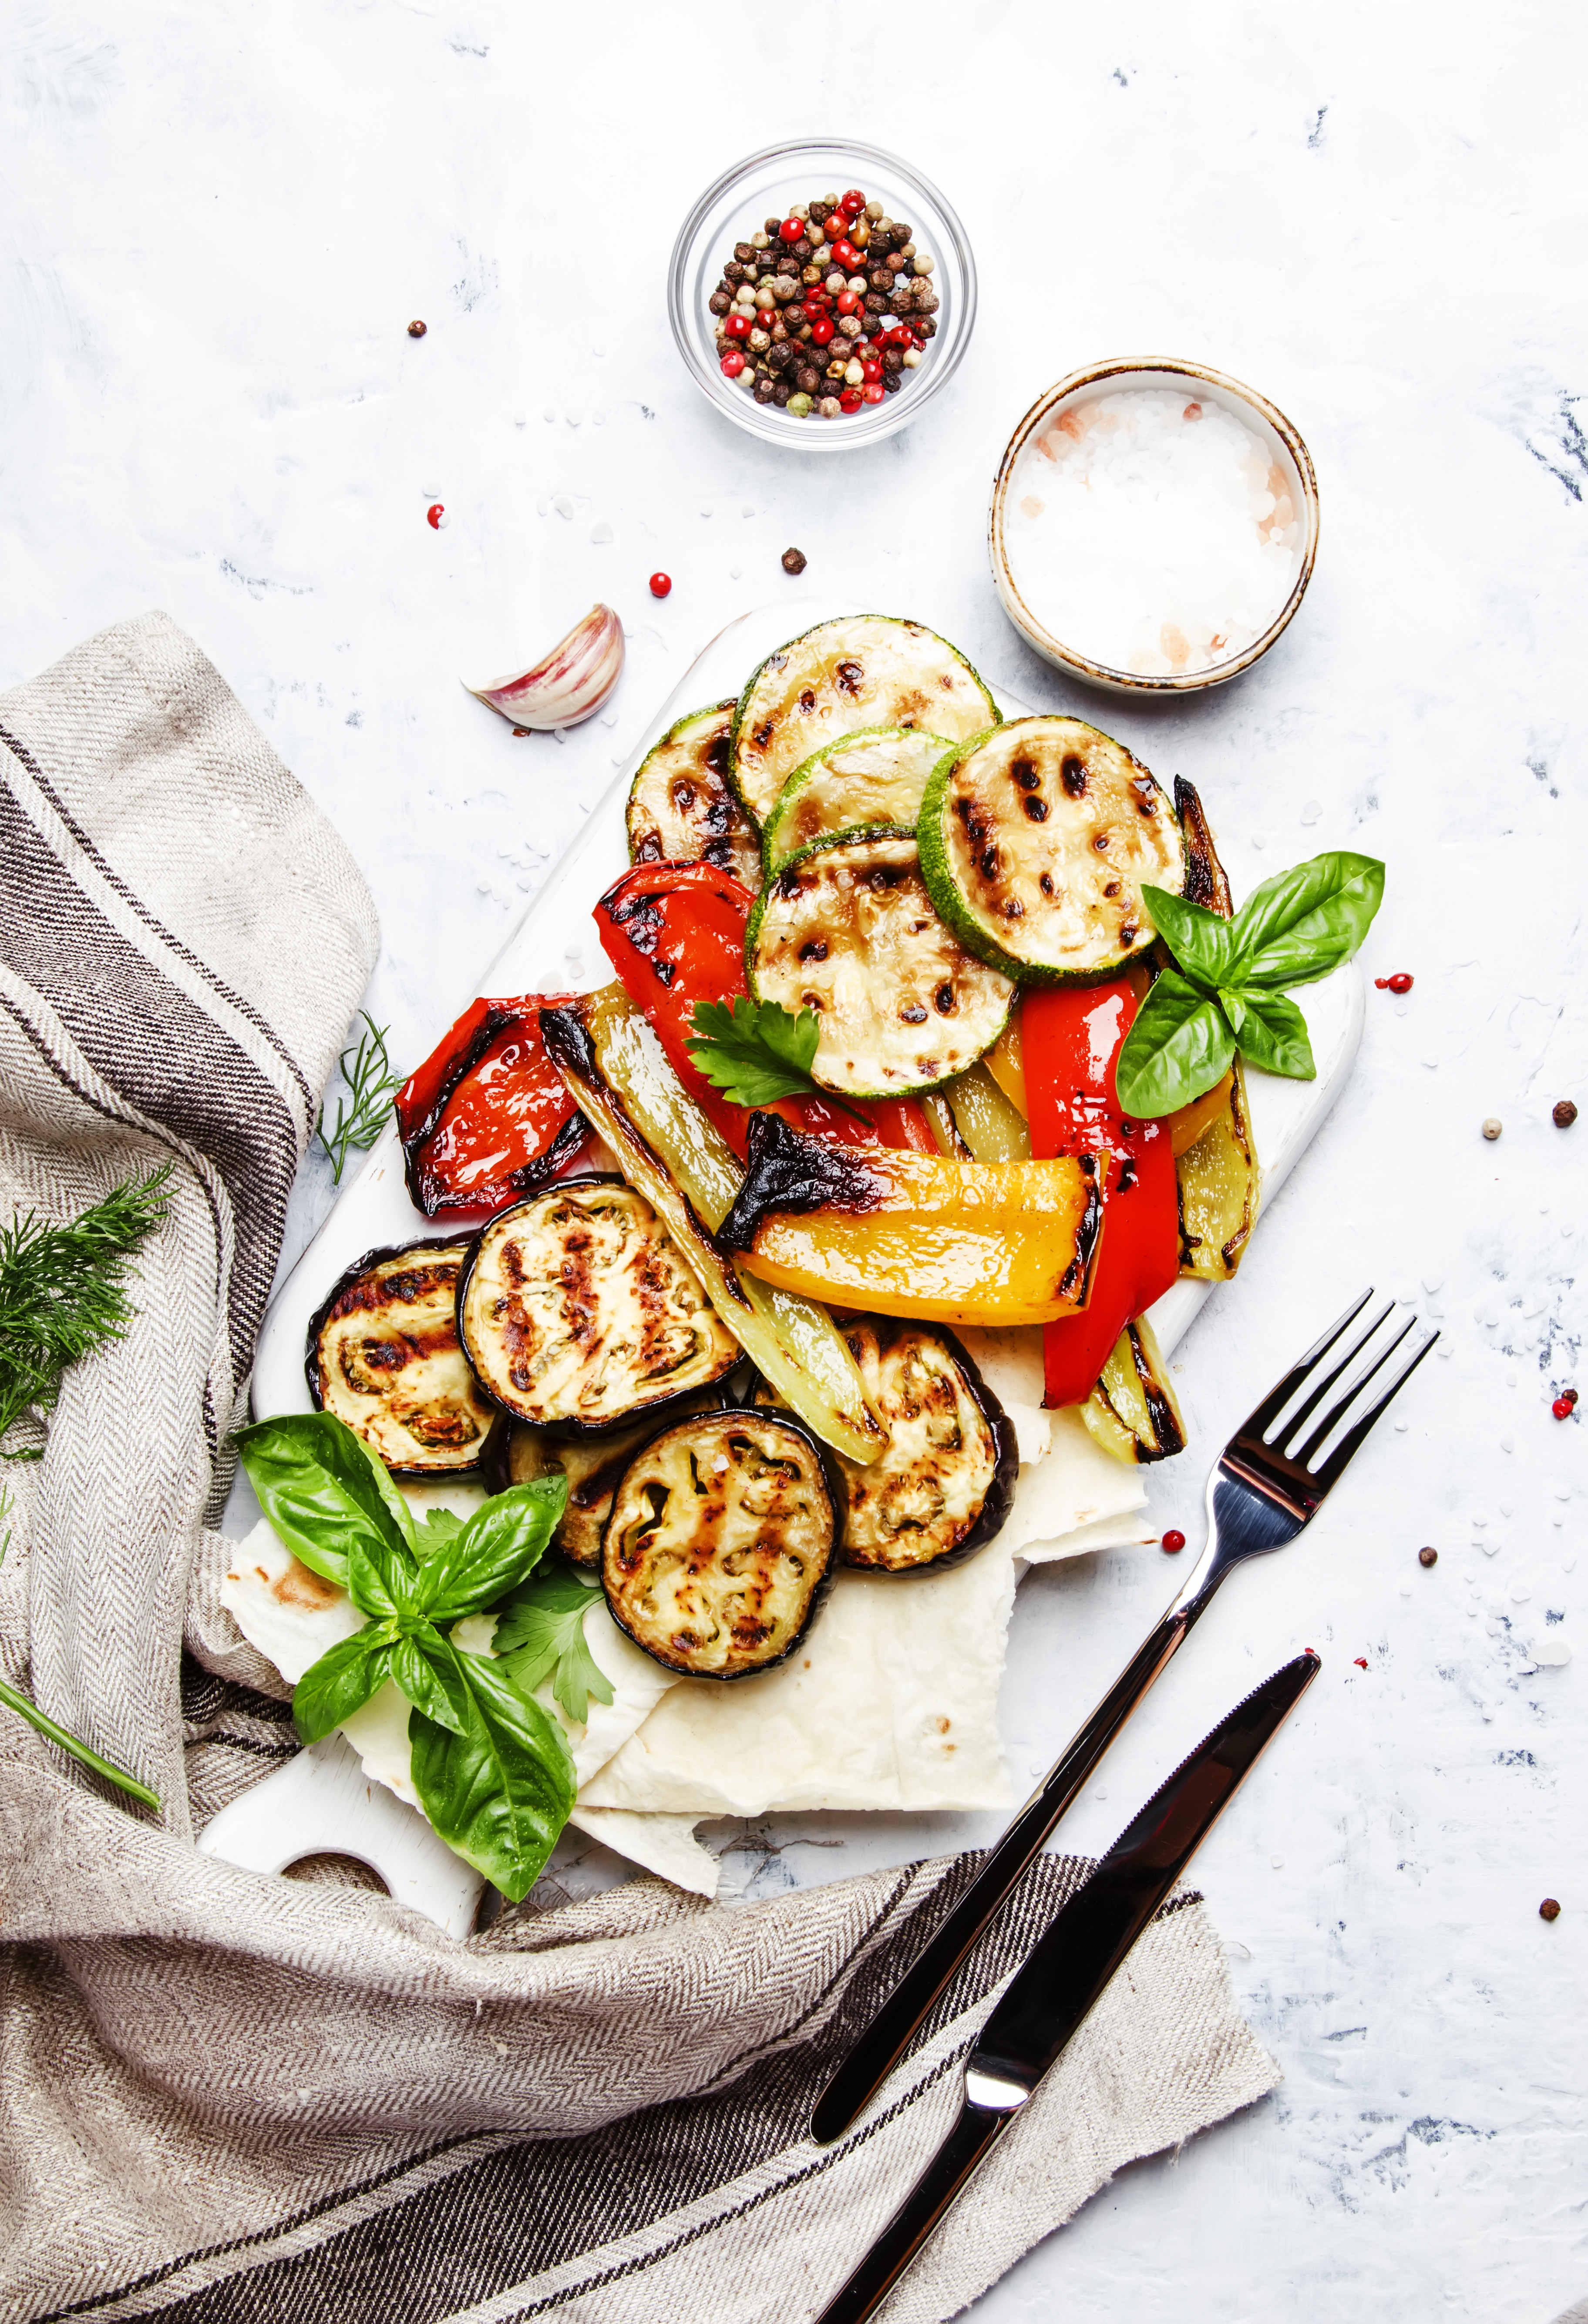 10th July: Meat-free Meals